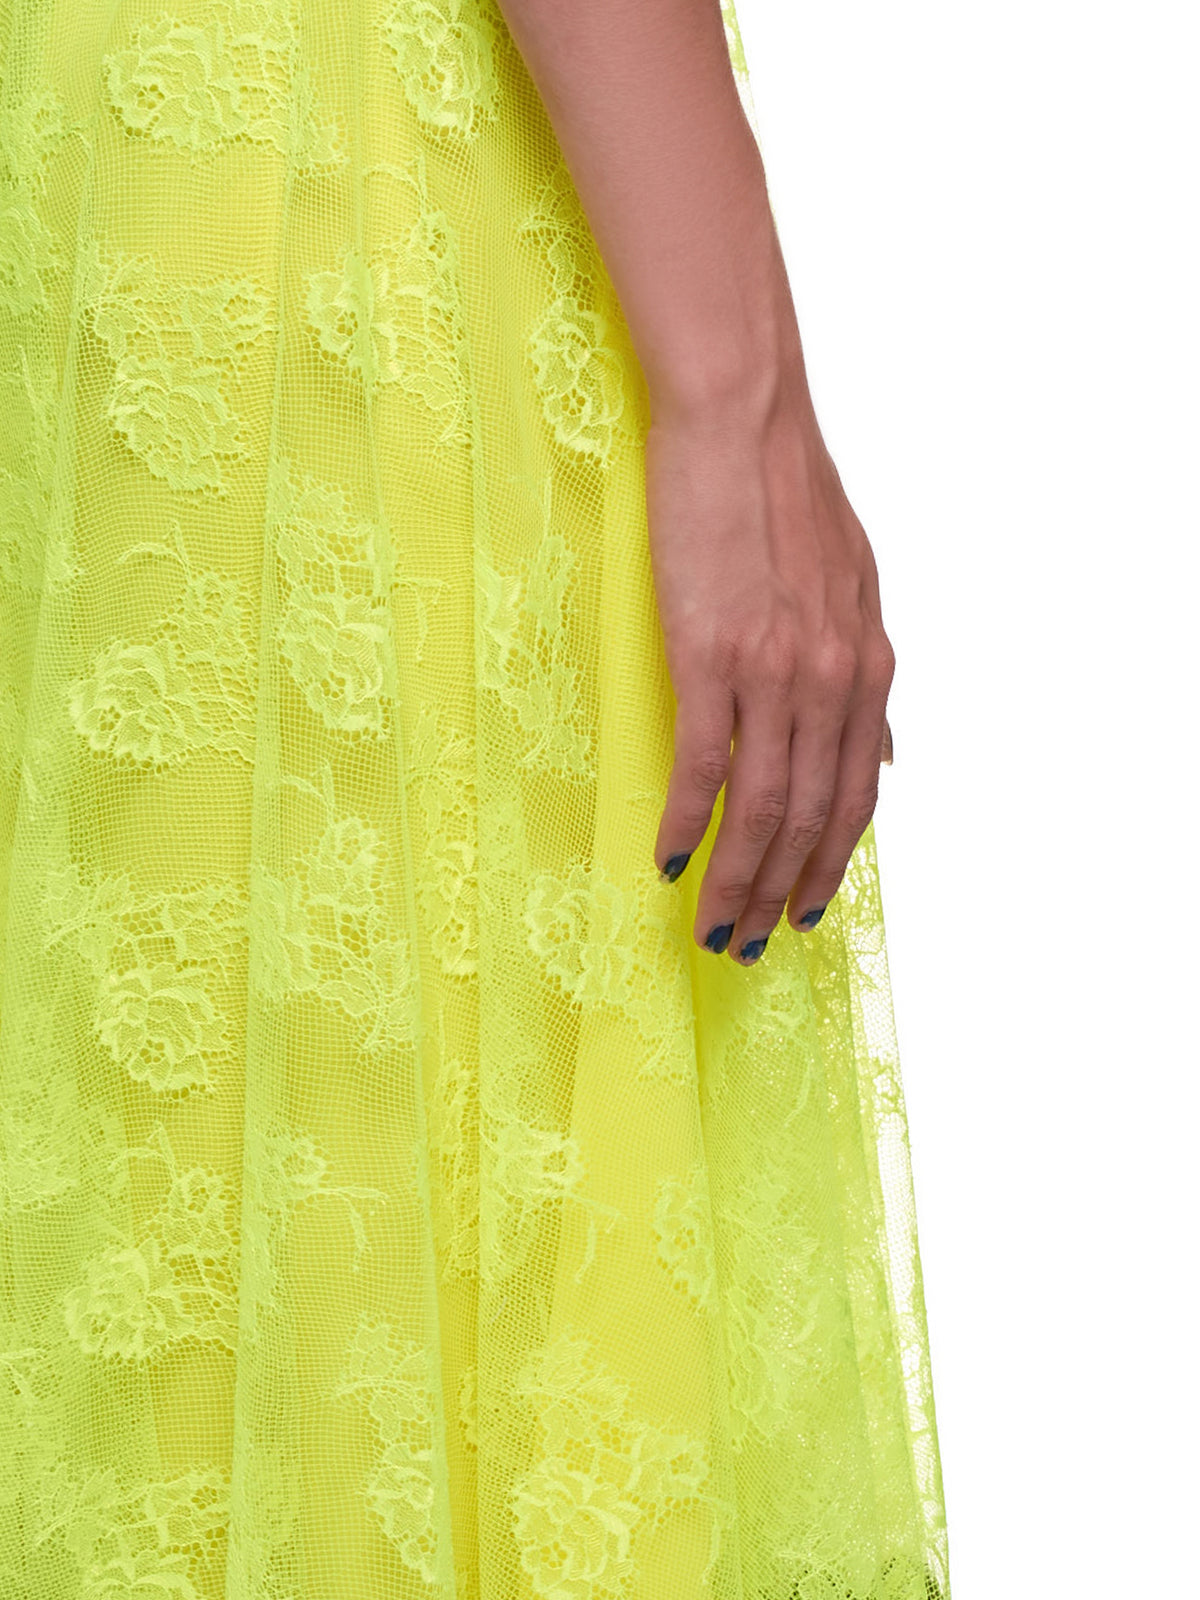 Chantilly Lace Neon Midi Skirt (SK1287-NEON-YELLOW)